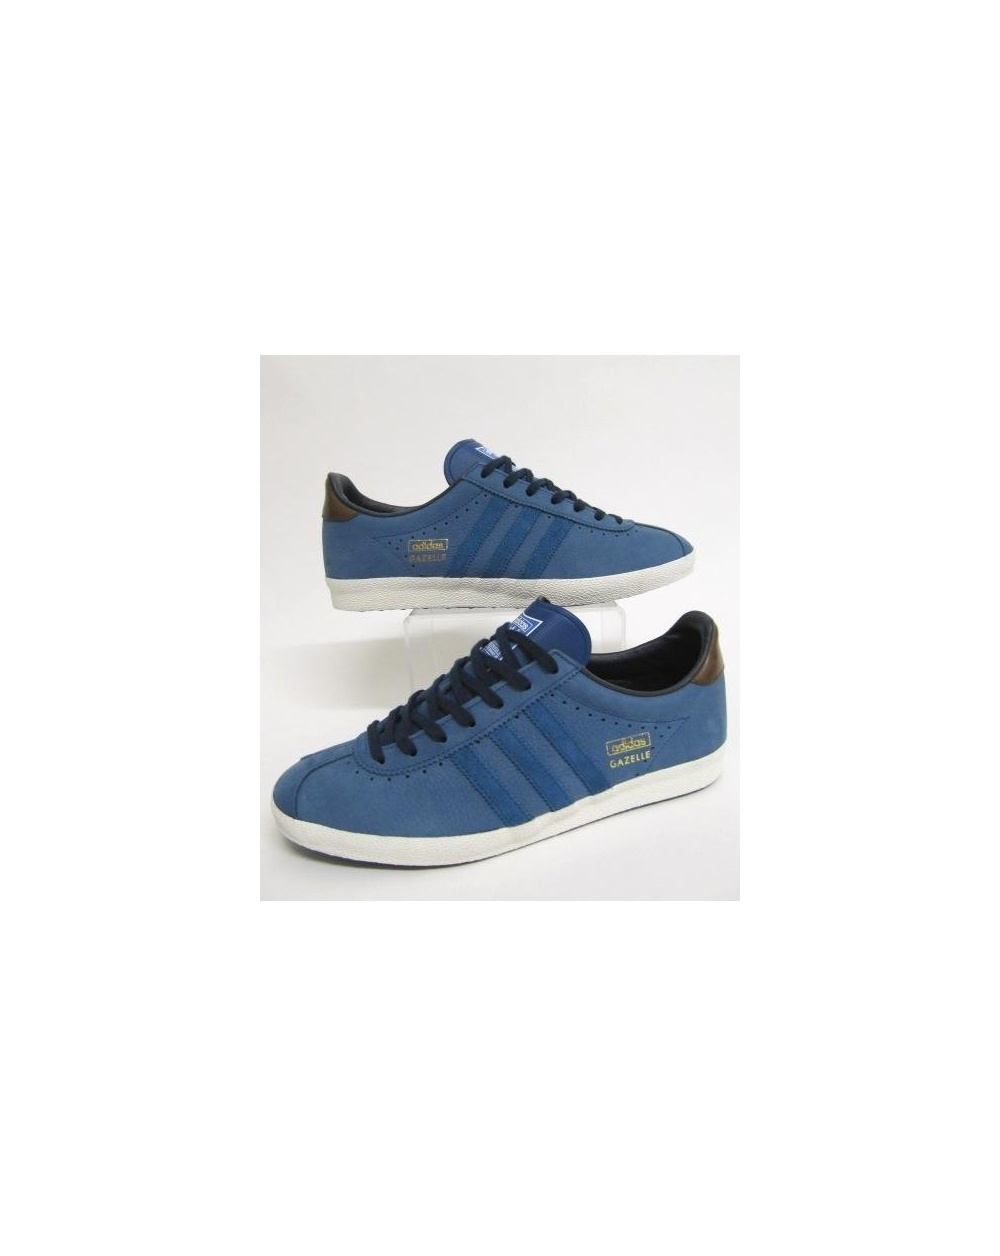 adidas gazelle og trainers leather tribe blue originals mens shoes sneakers retro. Black Bedroom Furniture Sets. Home Design Ideas